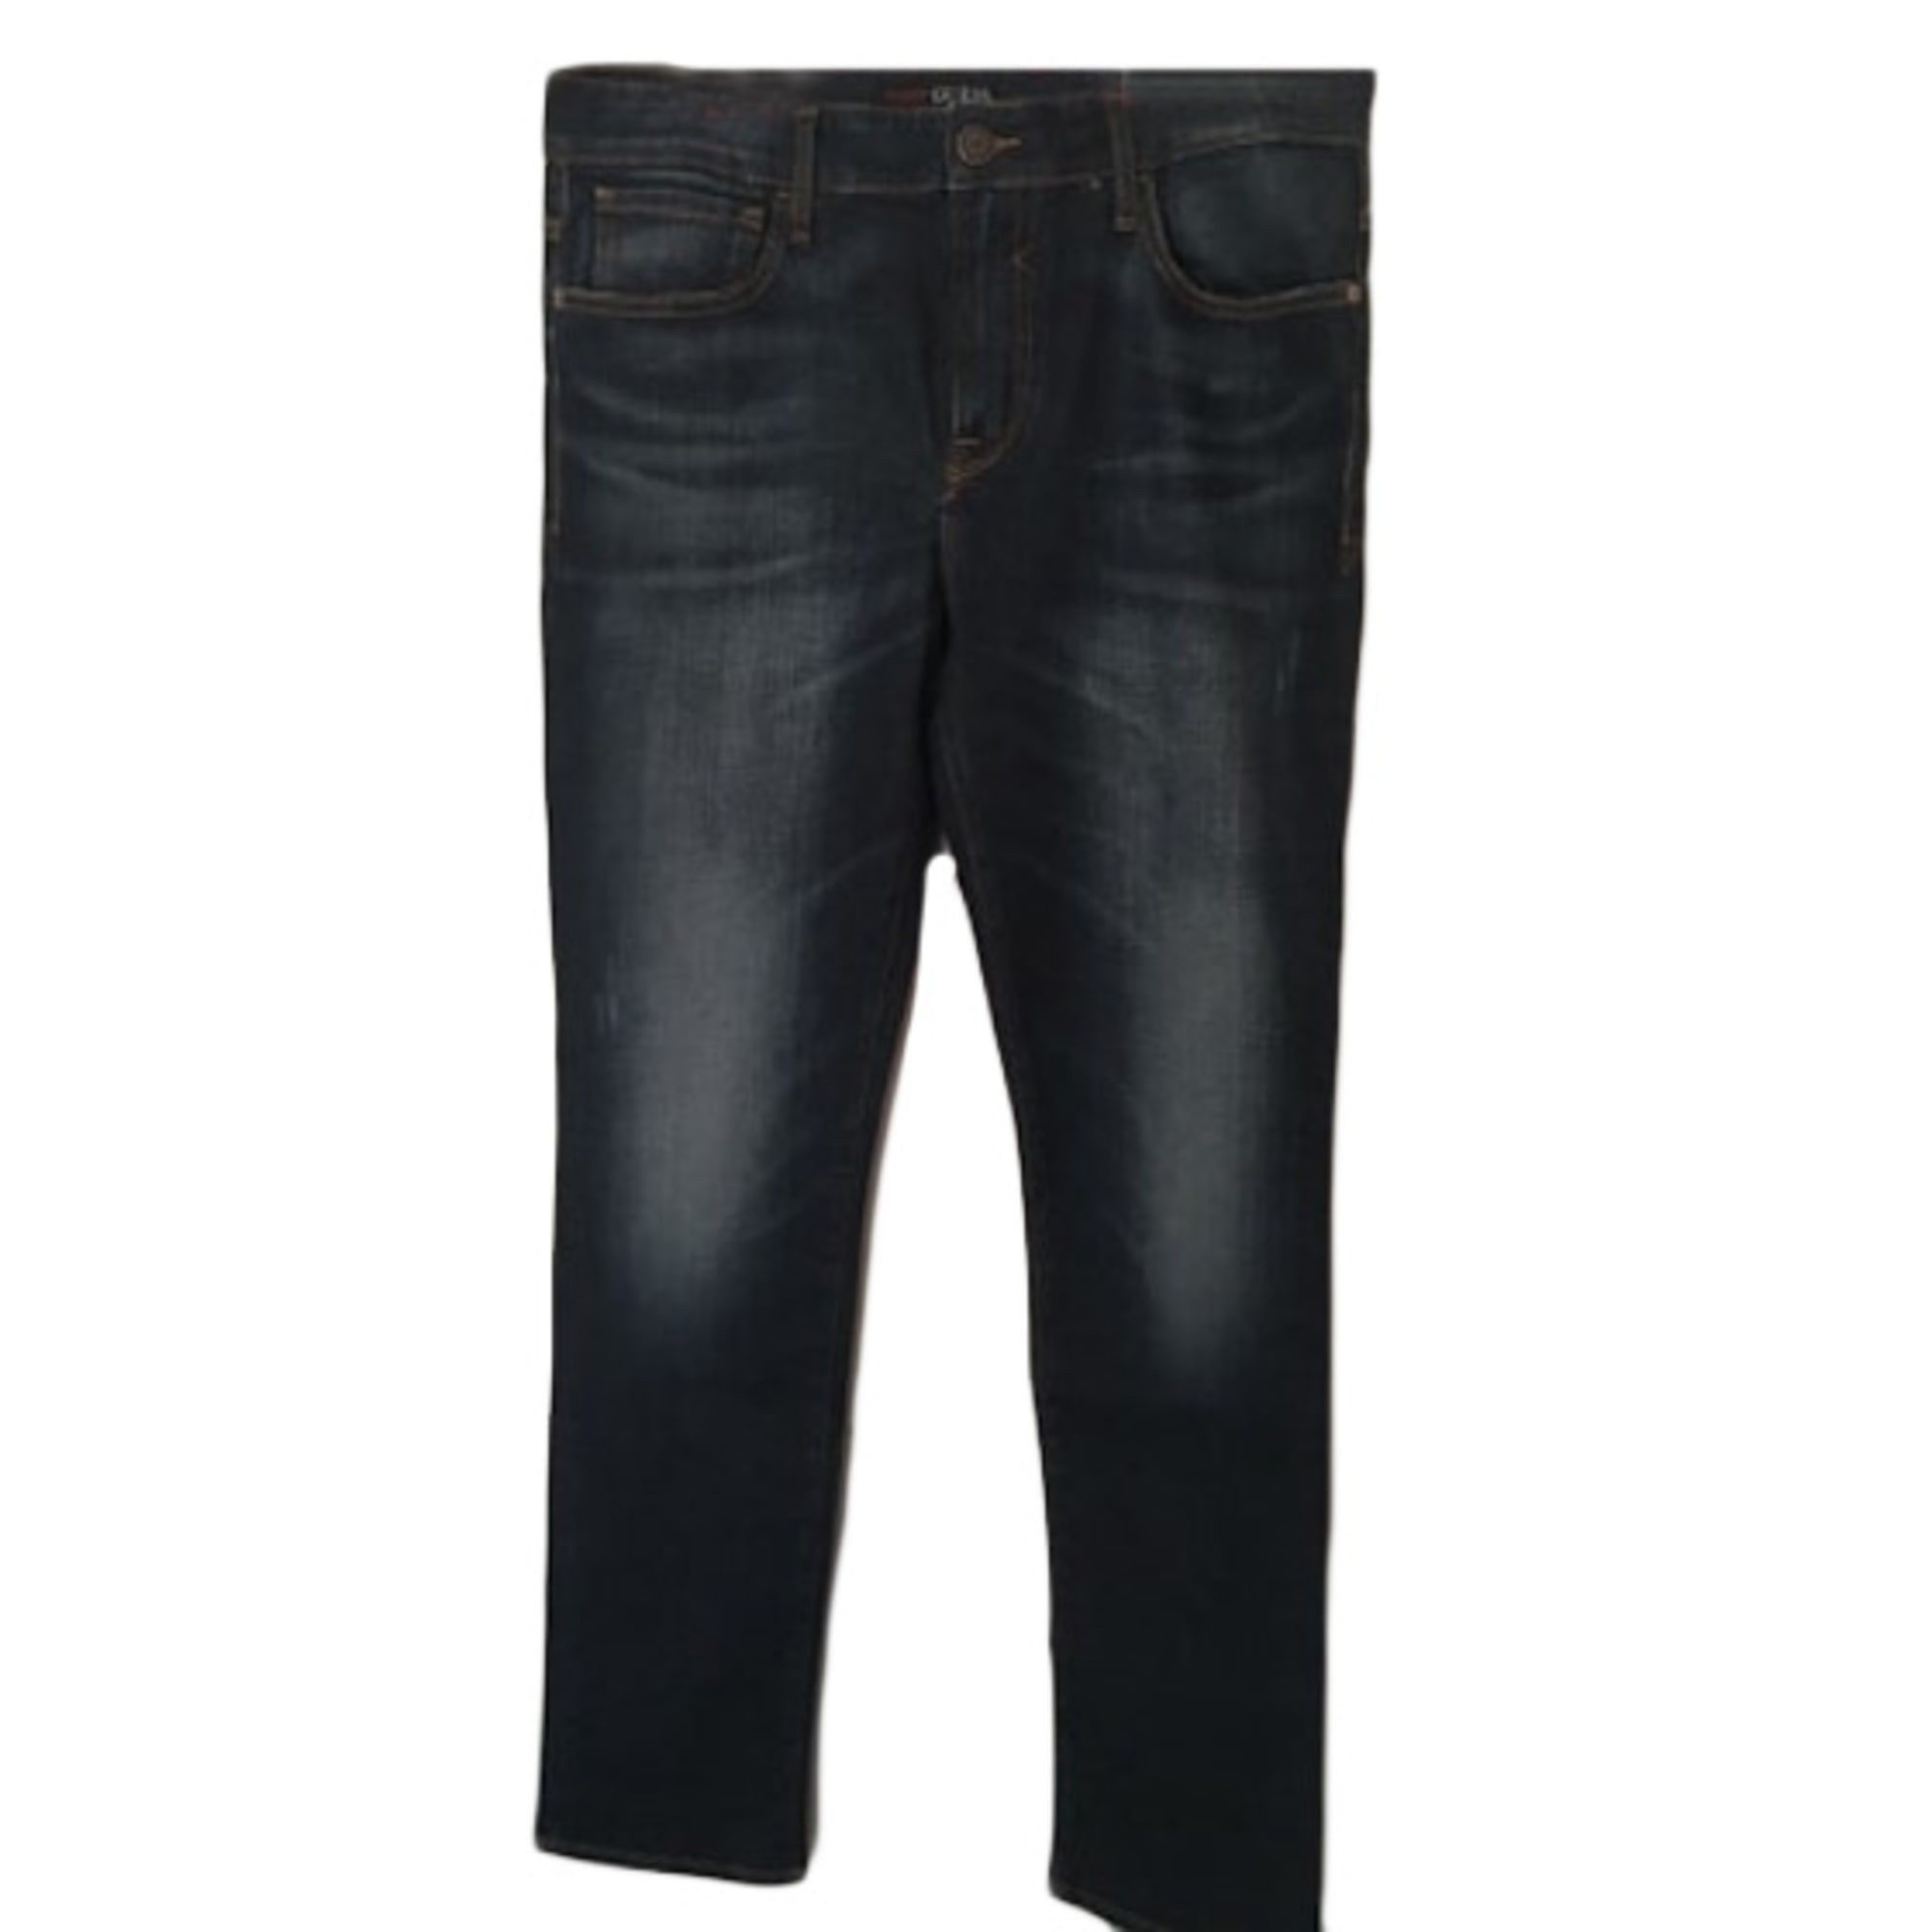 Skinny Jeans GUESS Blue, navy, turquoise